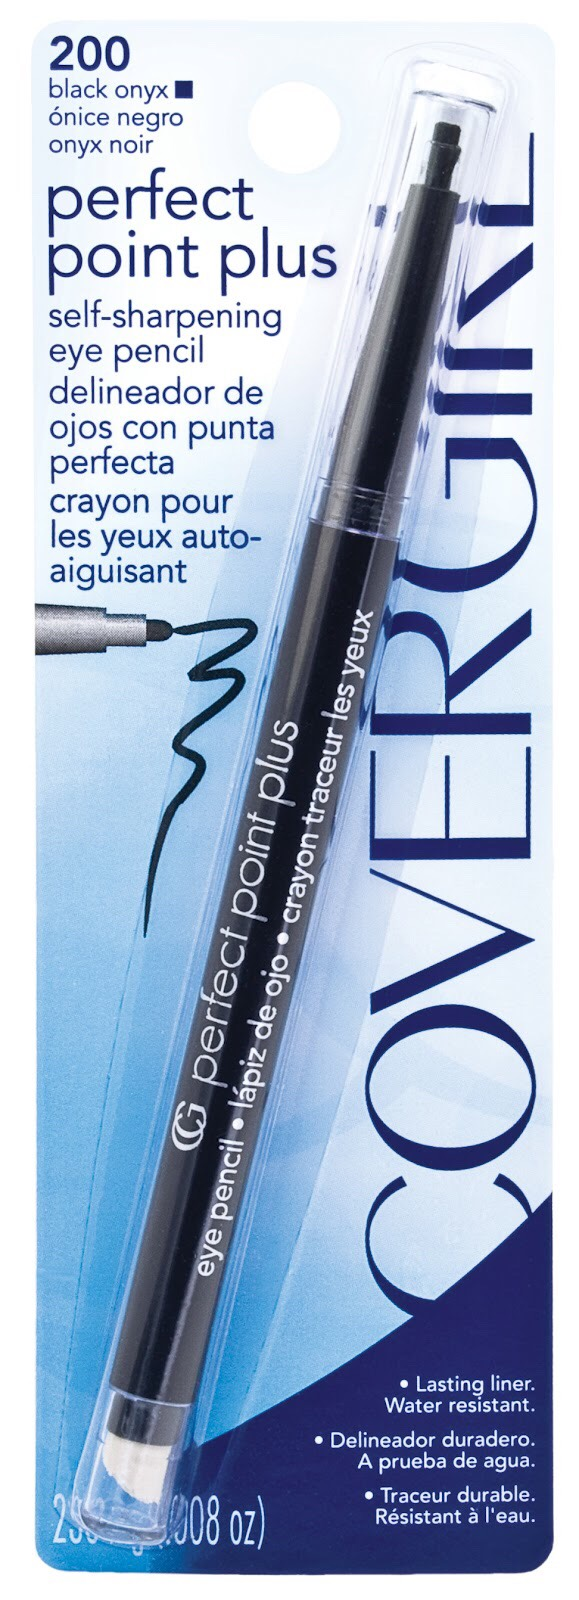 next apply some covergirl eyeliner either on your lower and upper waterline or above your upper eyelashes and beneath your lower eyelashes💋